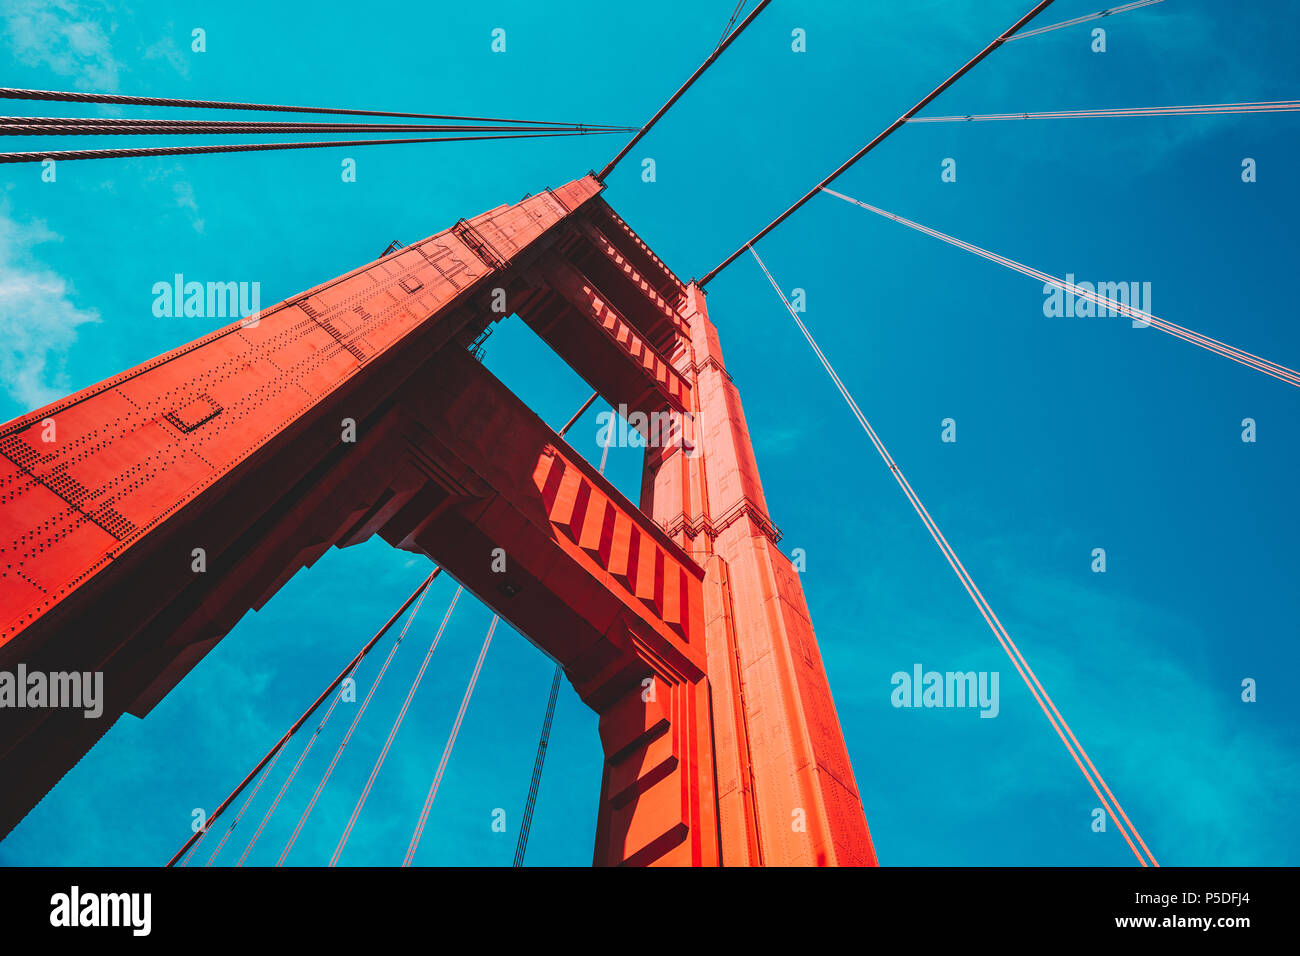 Beautiful low angle view of famous Golden Gate Bridge with blue sky and clouds on a sunny day in summer with retro vintage post crocessing filter effe - Stock Image